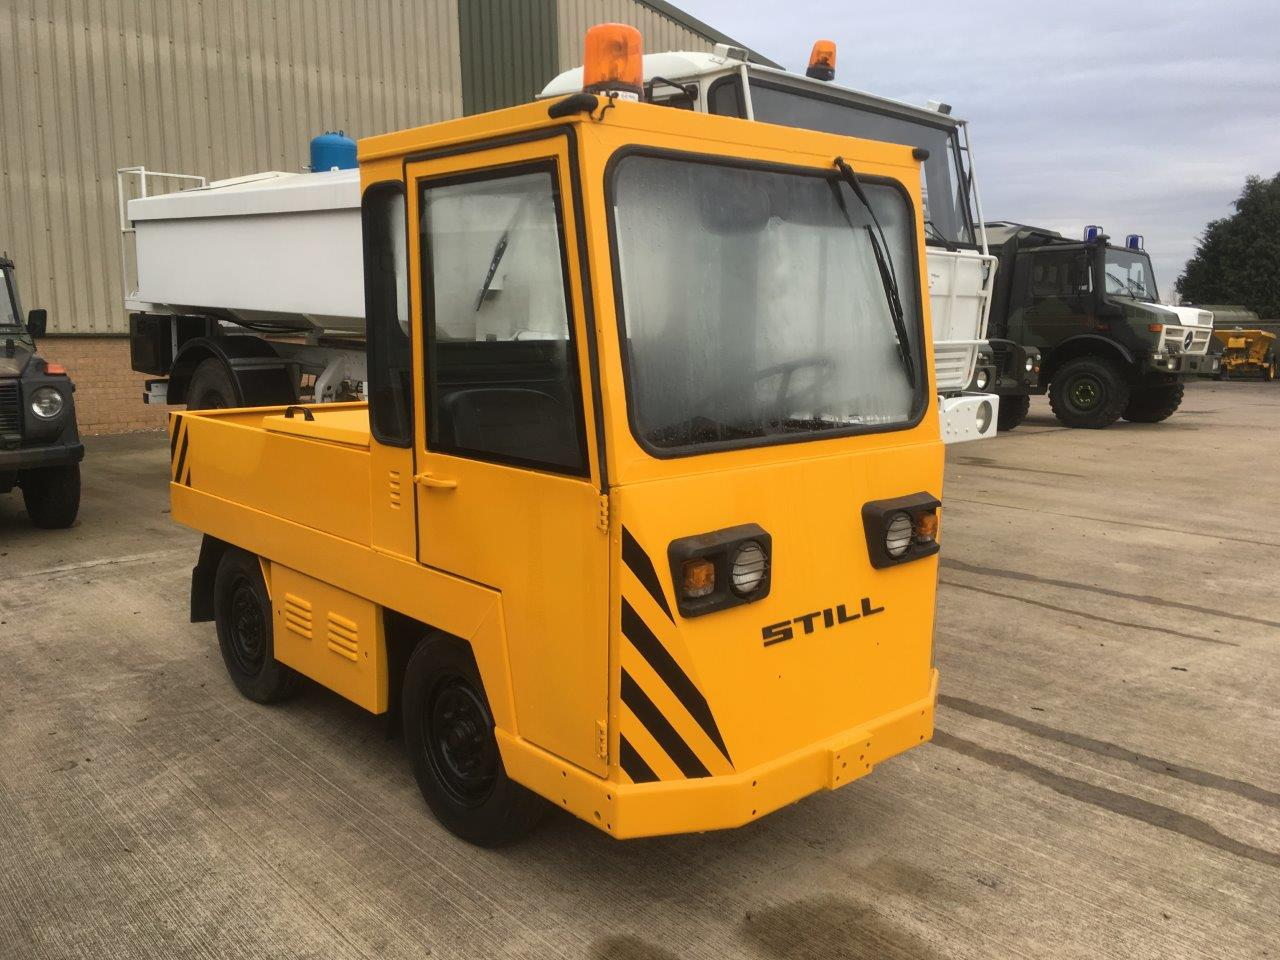 Still R07 Aircaft Tug | used military vehicles for sale